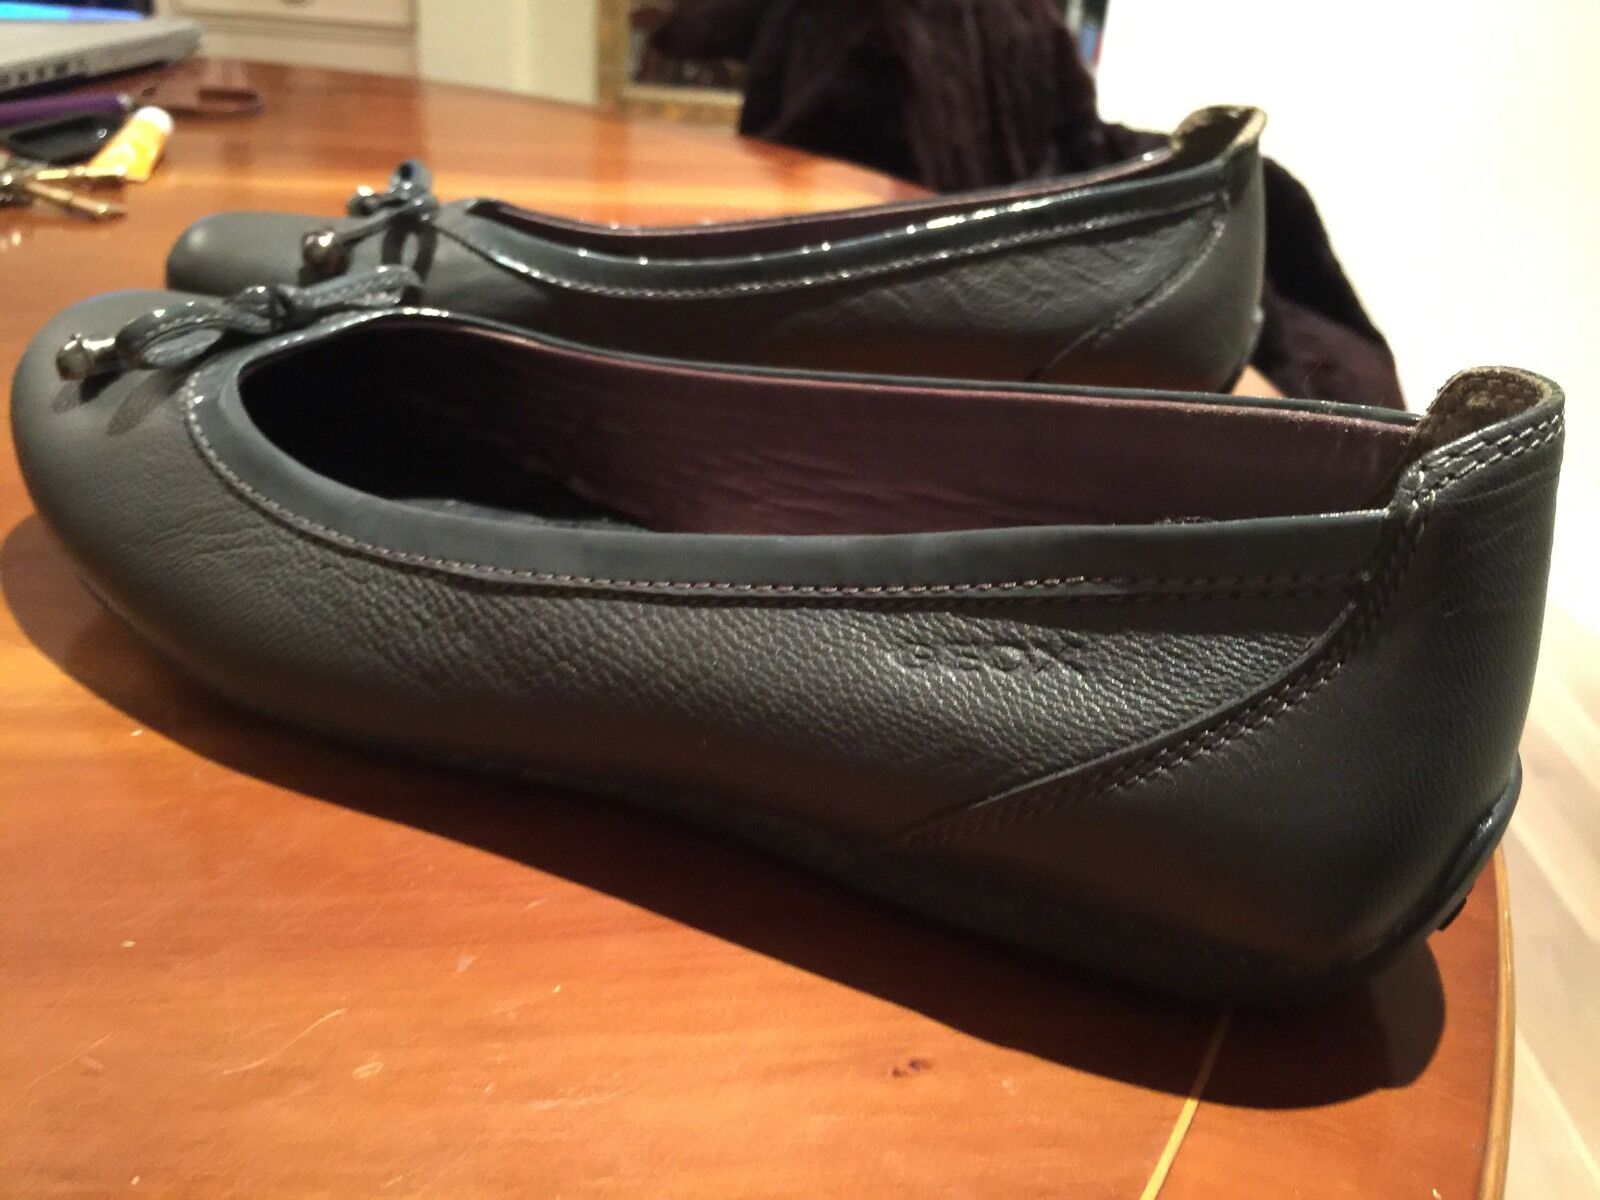 Geox Respira Ladies Leather Ballet Flats Size 42 New New New 88a091